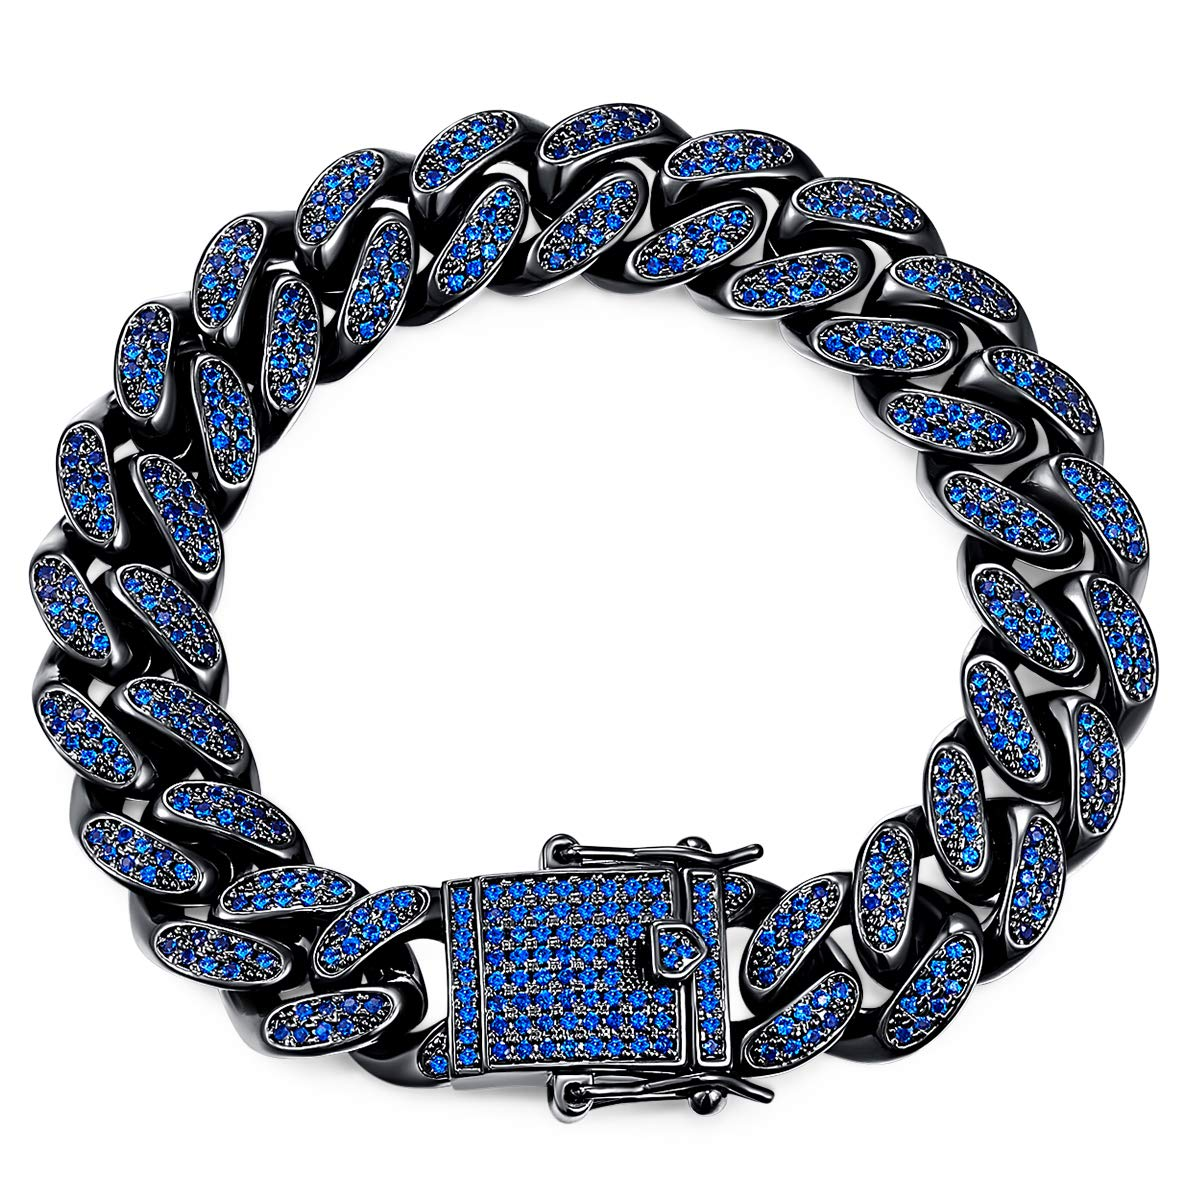 Cde Men Bracelet Cuban Hip Hop Iced Out Style Bracelet Embellished With Crystals From Swarovski Jewelry For Valentine S Day Gift Buy Online In Bahamas At Desertcart Productid 113522120